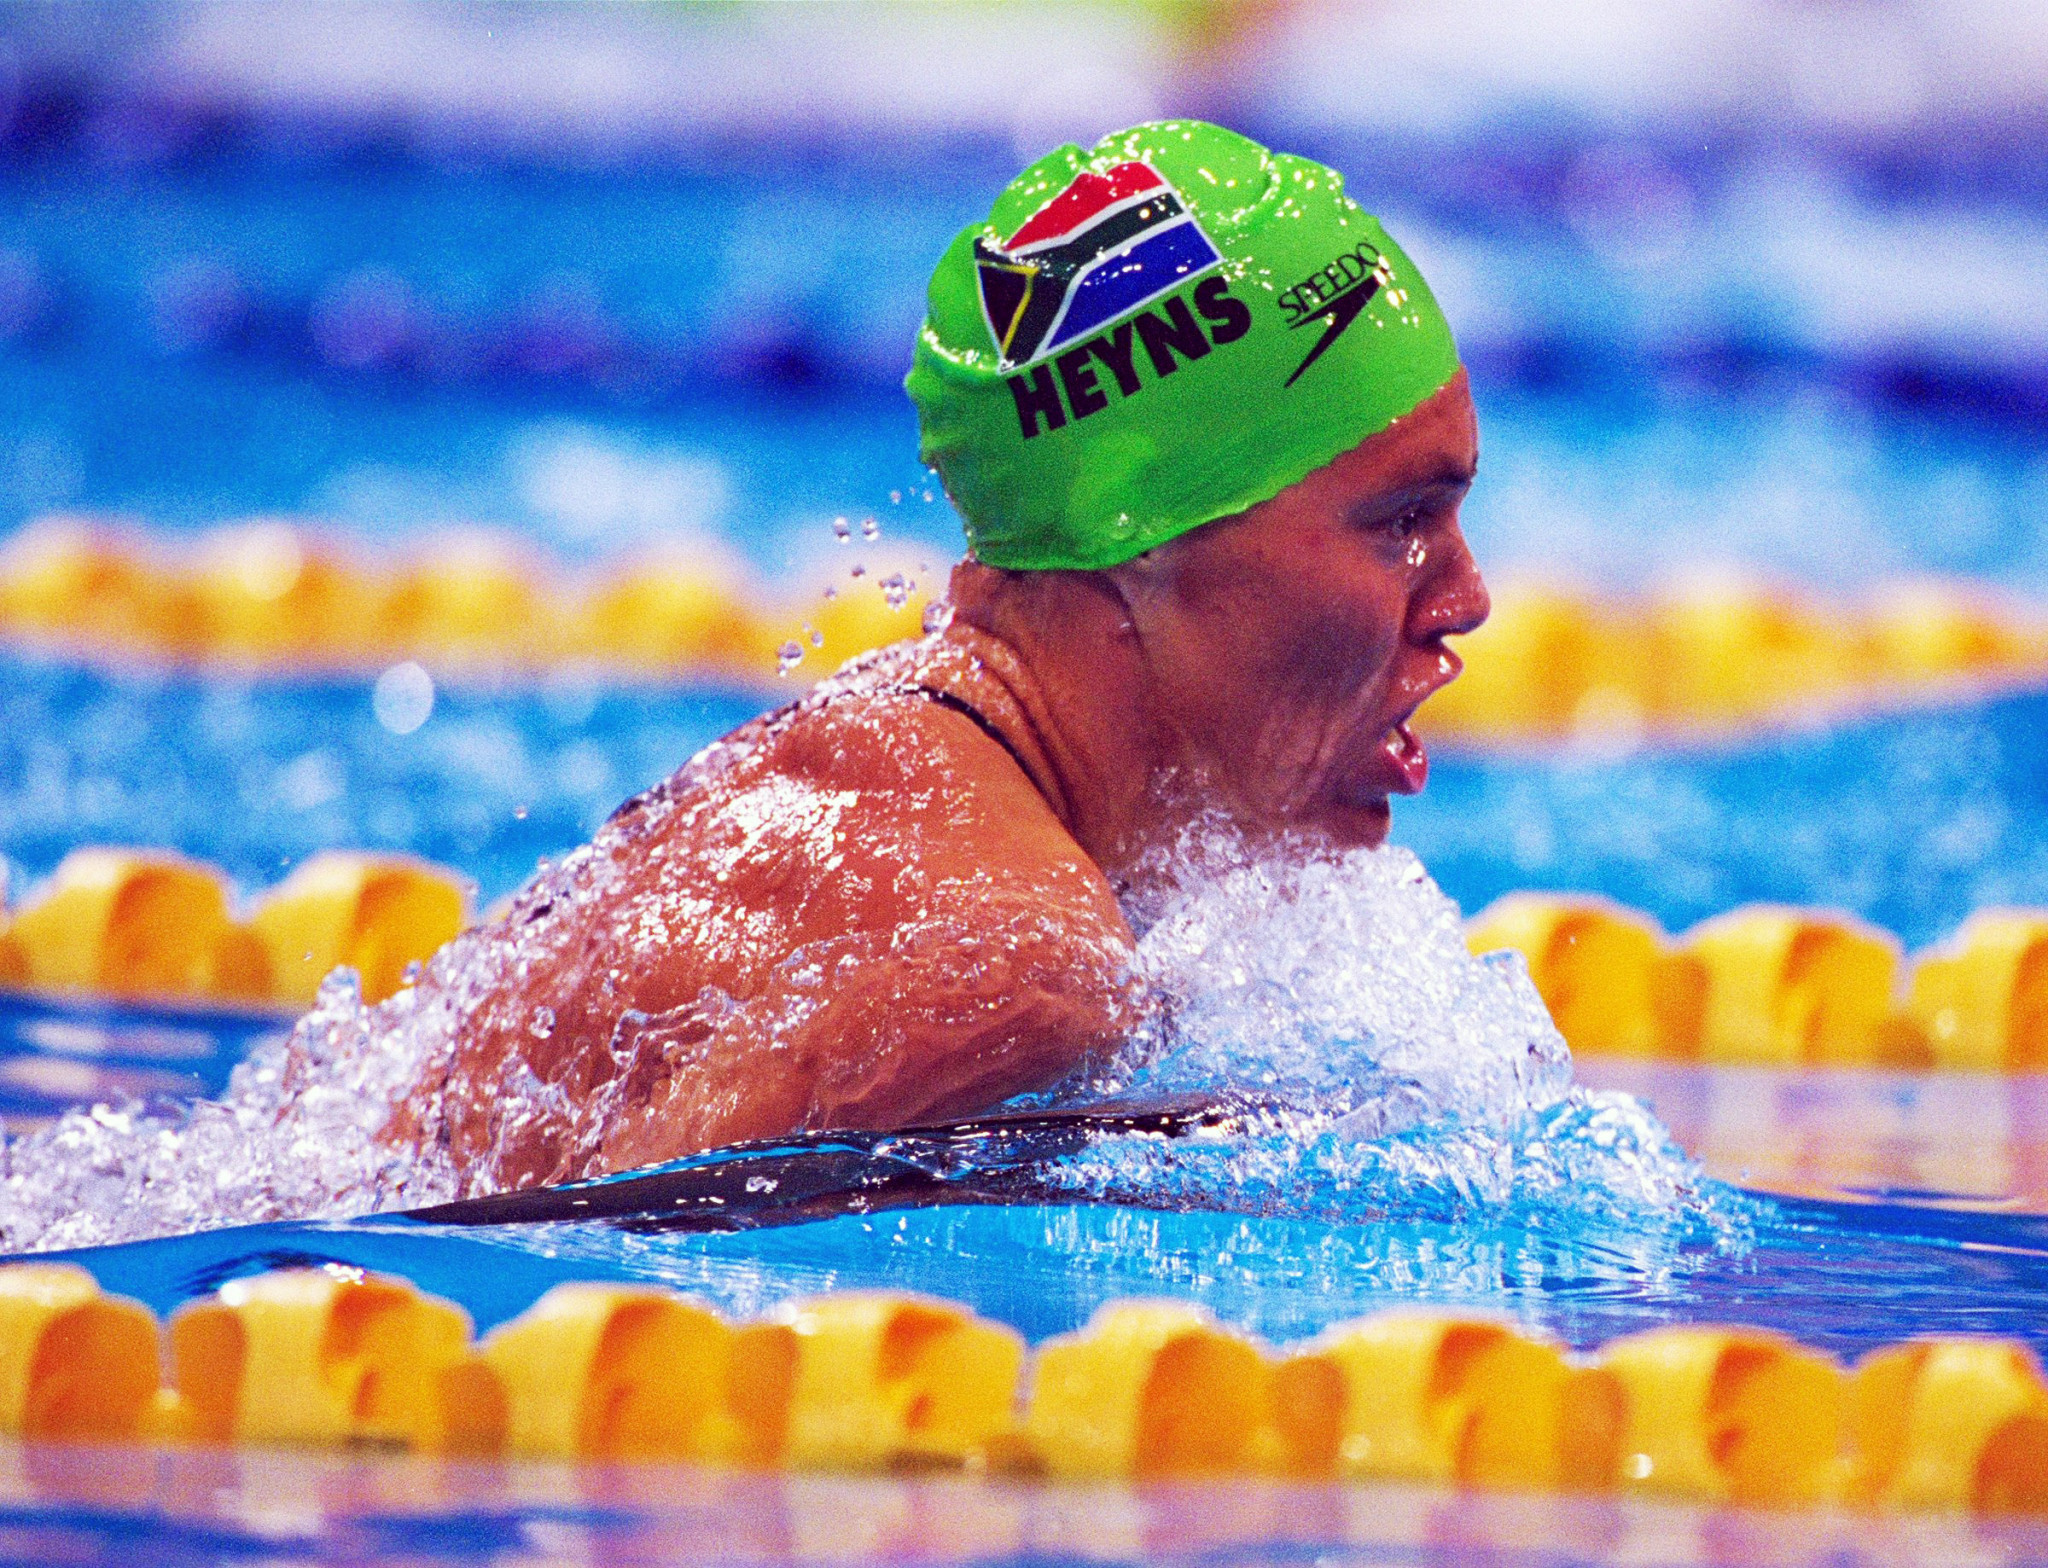 Double Olympic swimming champion Heyns replaces Scott on WADA Compliance Review Committee